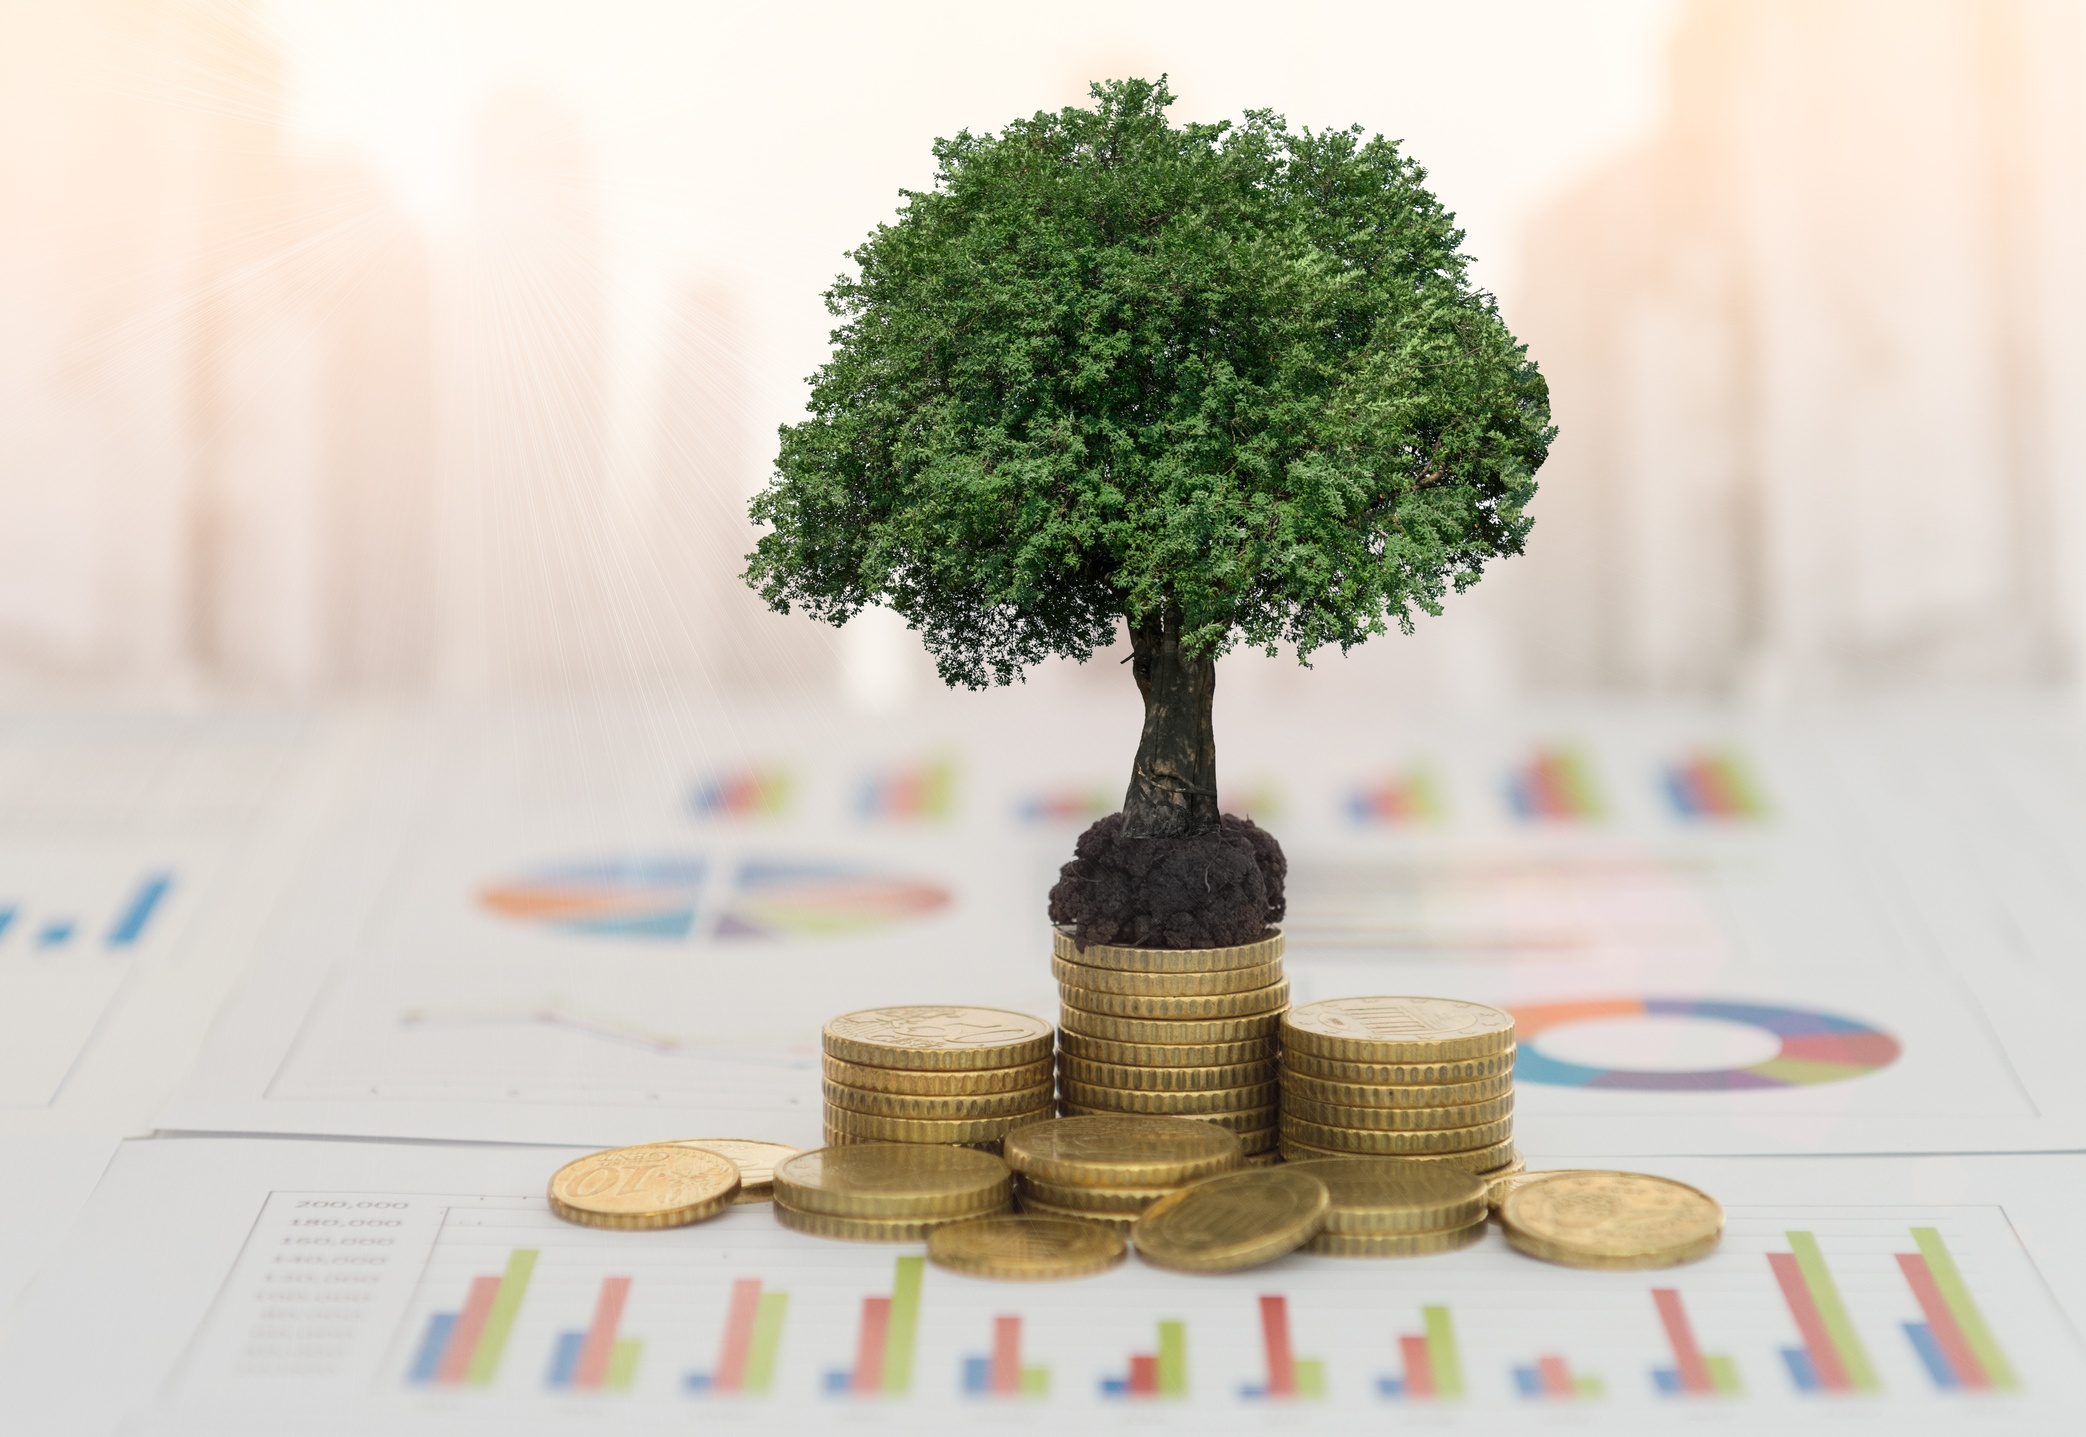 ROI-on-technology-with-coins-and-growth